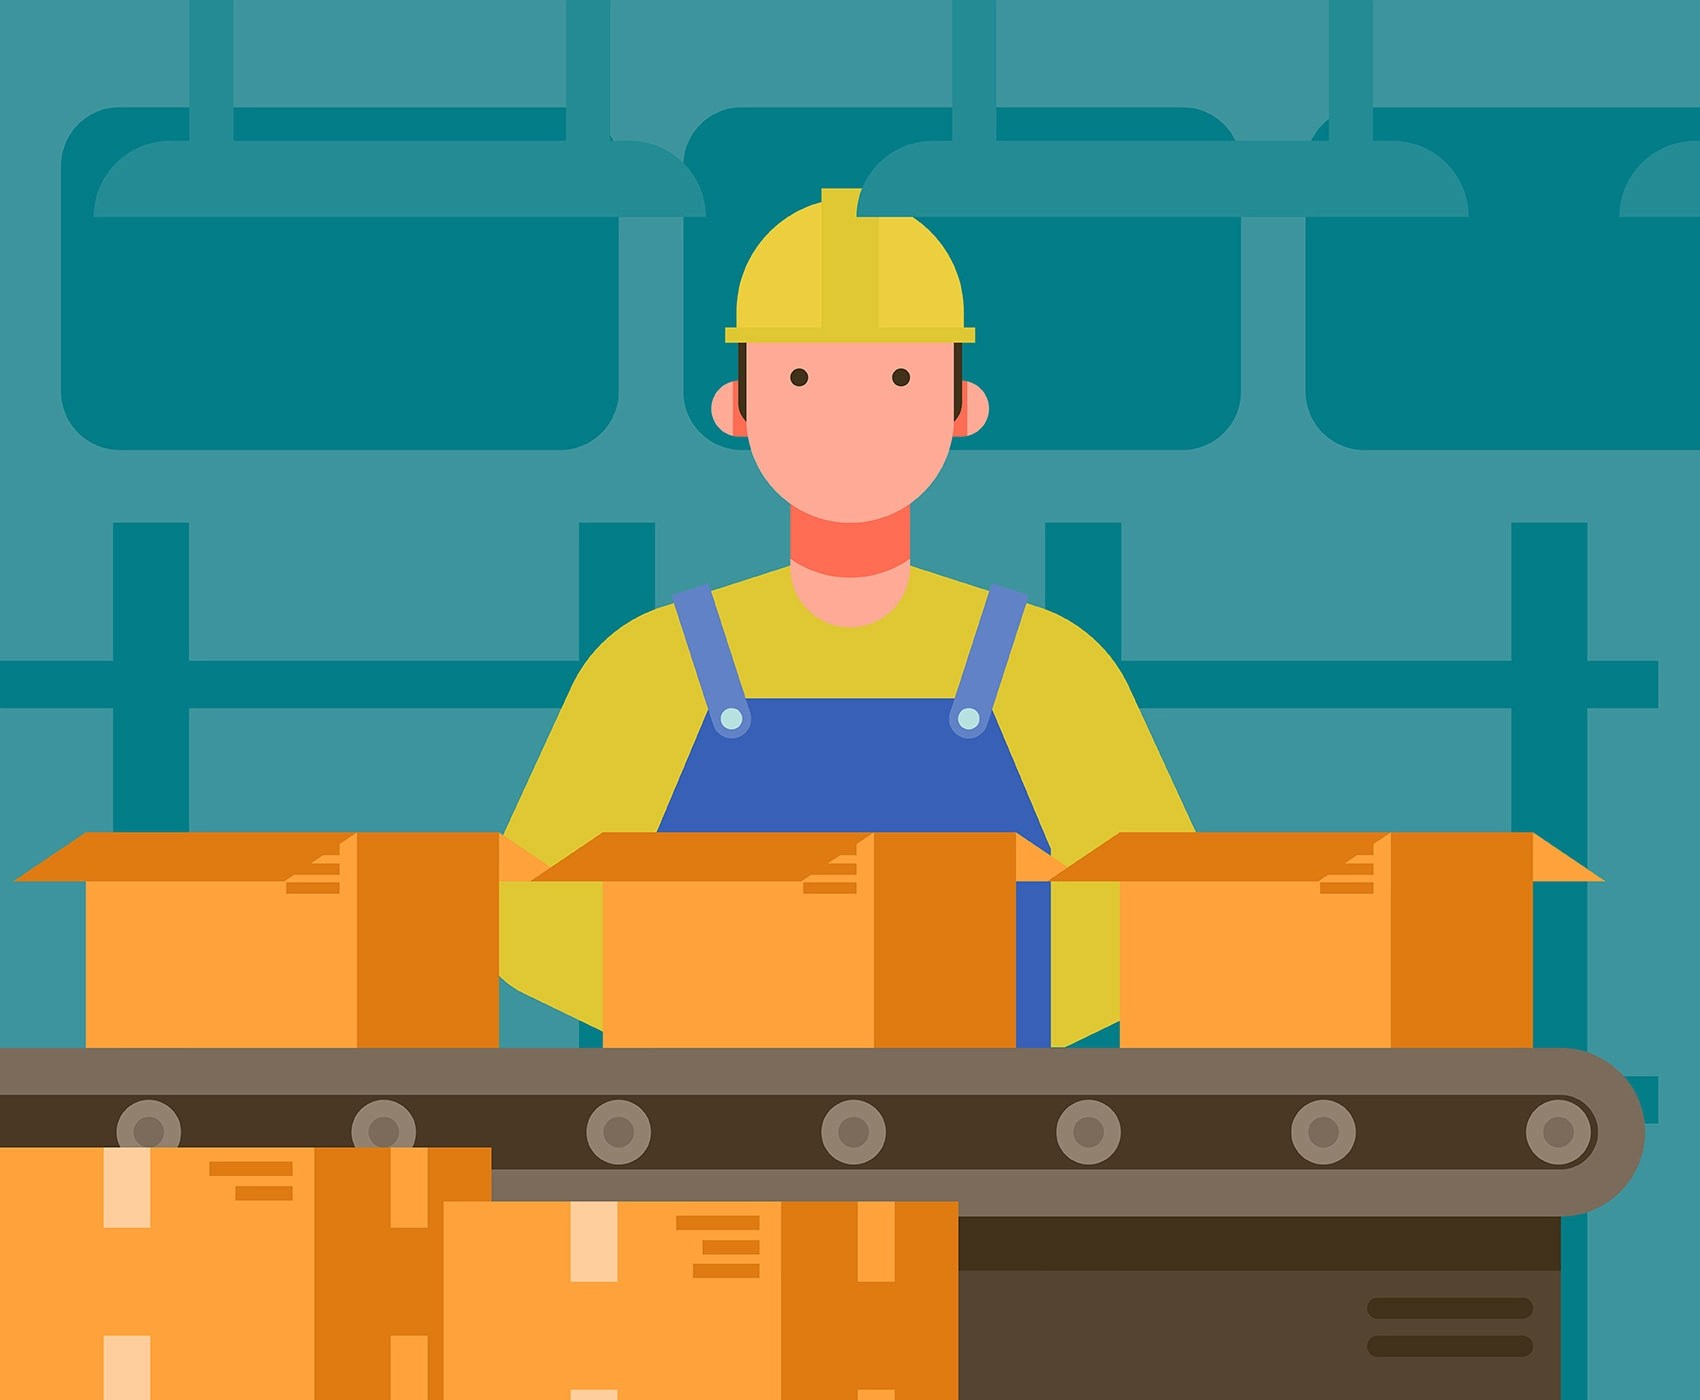 Factory Worker Illustration  Download Free Vector Art Stock Graphics  Images